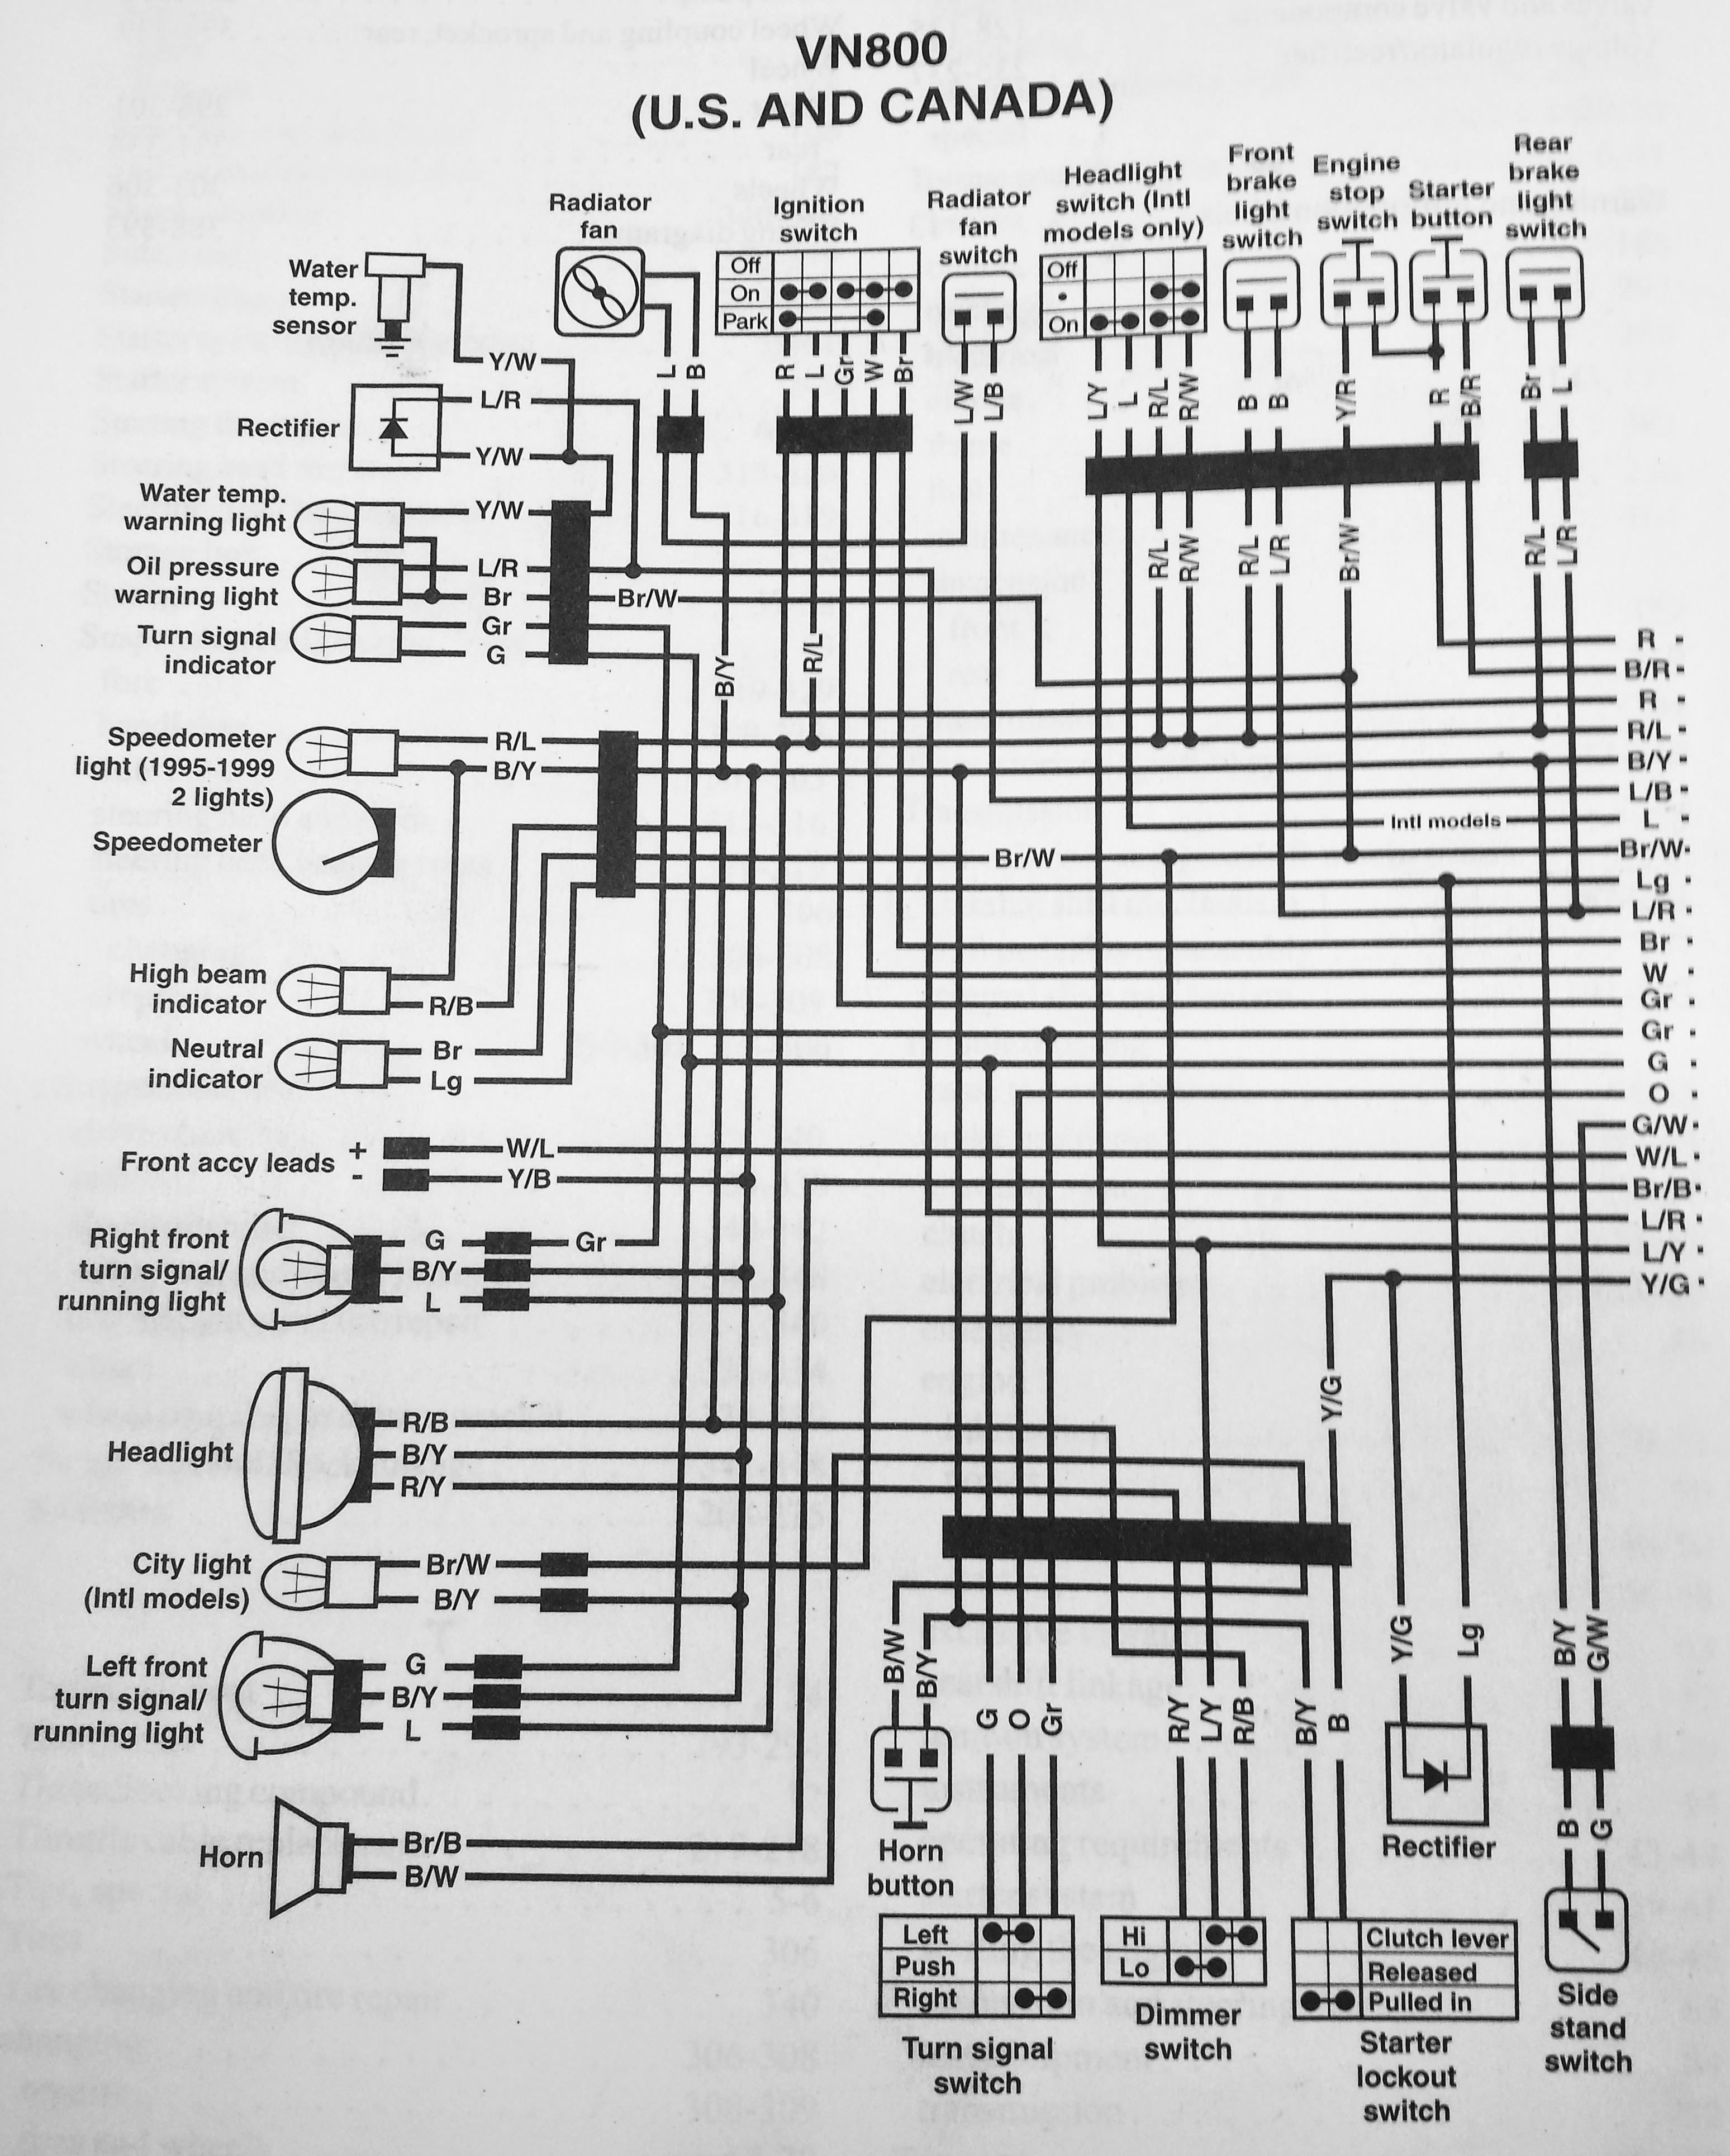 yamaha kodiak wiring diagram free download schematic sansui tv circuit diagram free download  with images  circuit  sansui tv circuit diagram free download